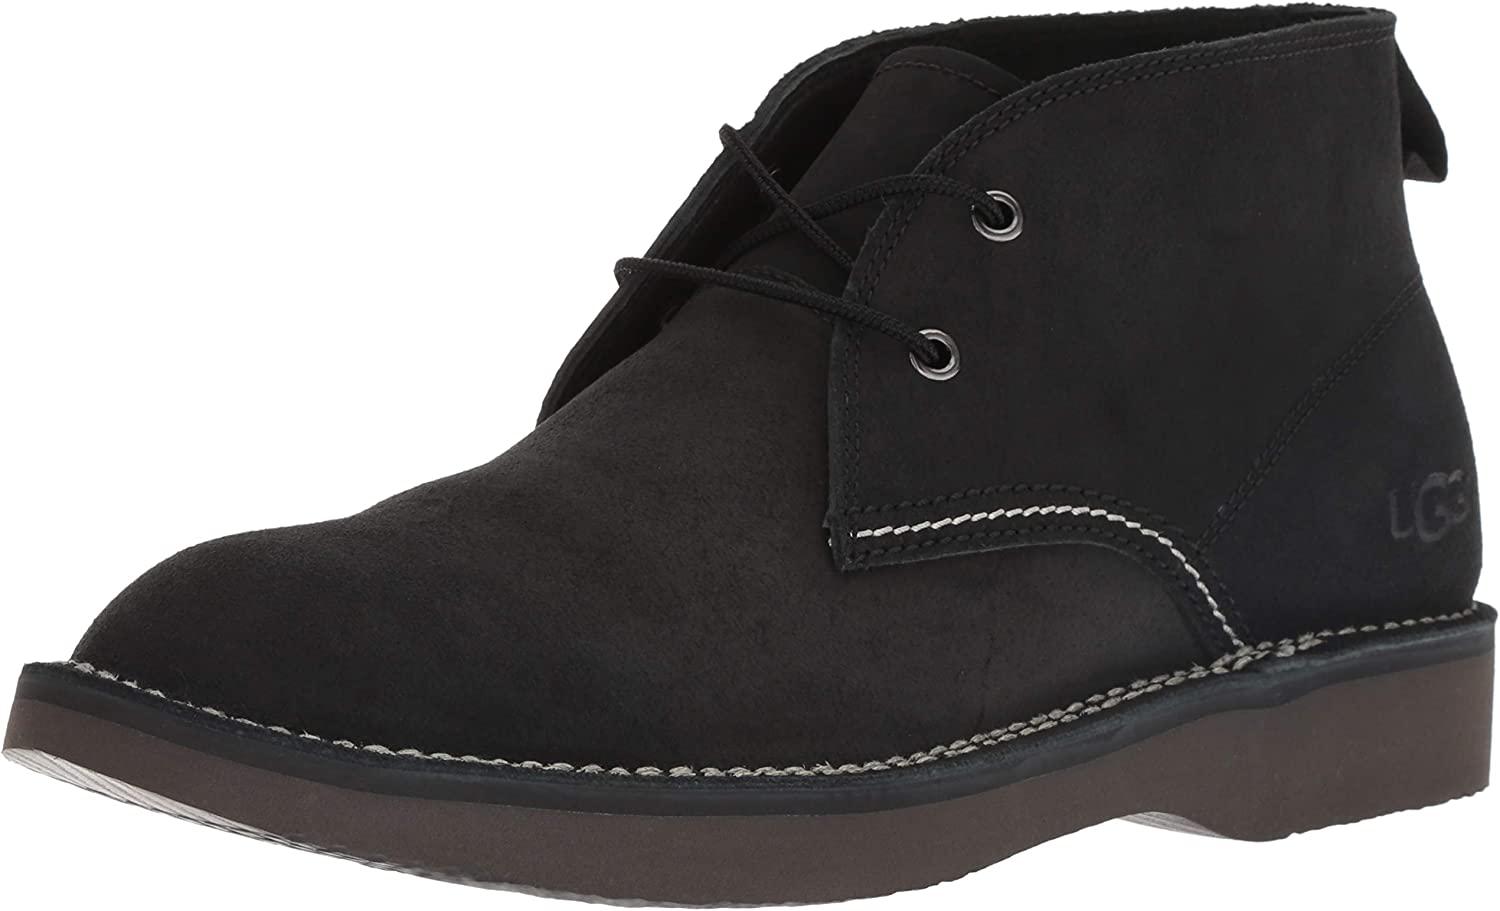 Mail order UGG New products world's highest quality popular Men's Camino Boot Chukka